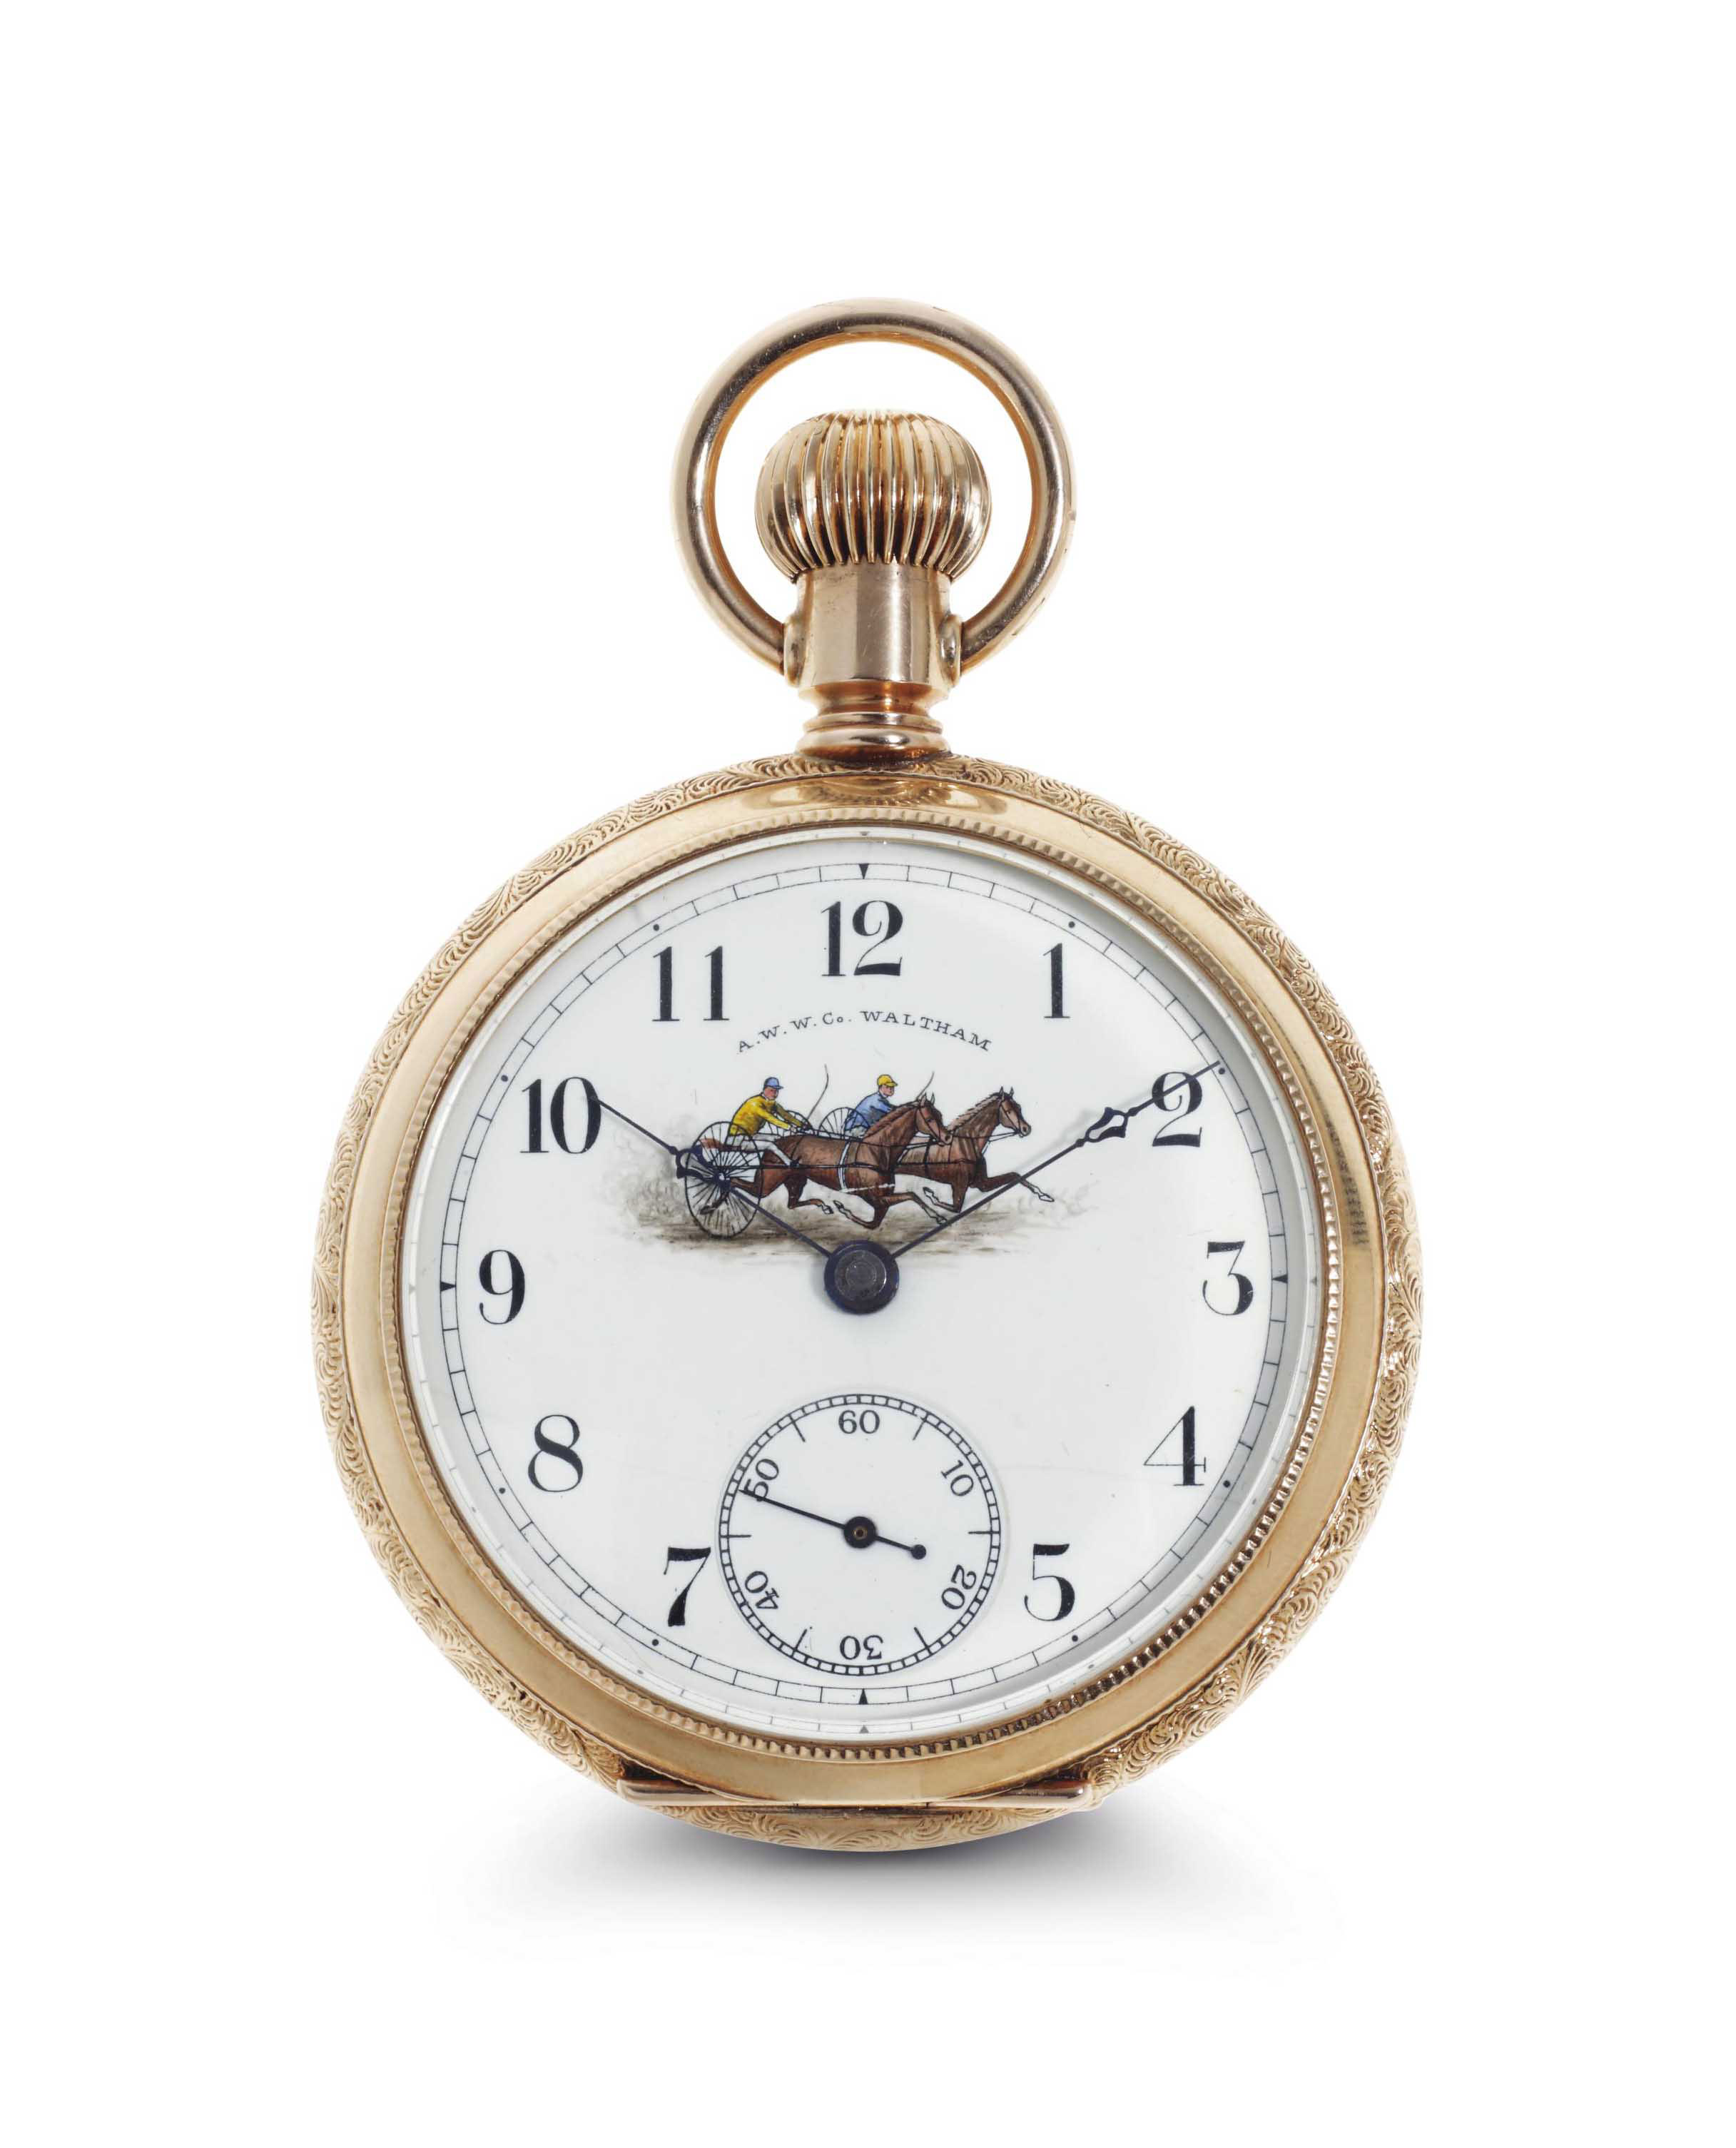 American Waltham Watch. A Fine 14k Gold Openface Keyless Lever Pocket Watch With Enamel Dial With Horse Racing Cart